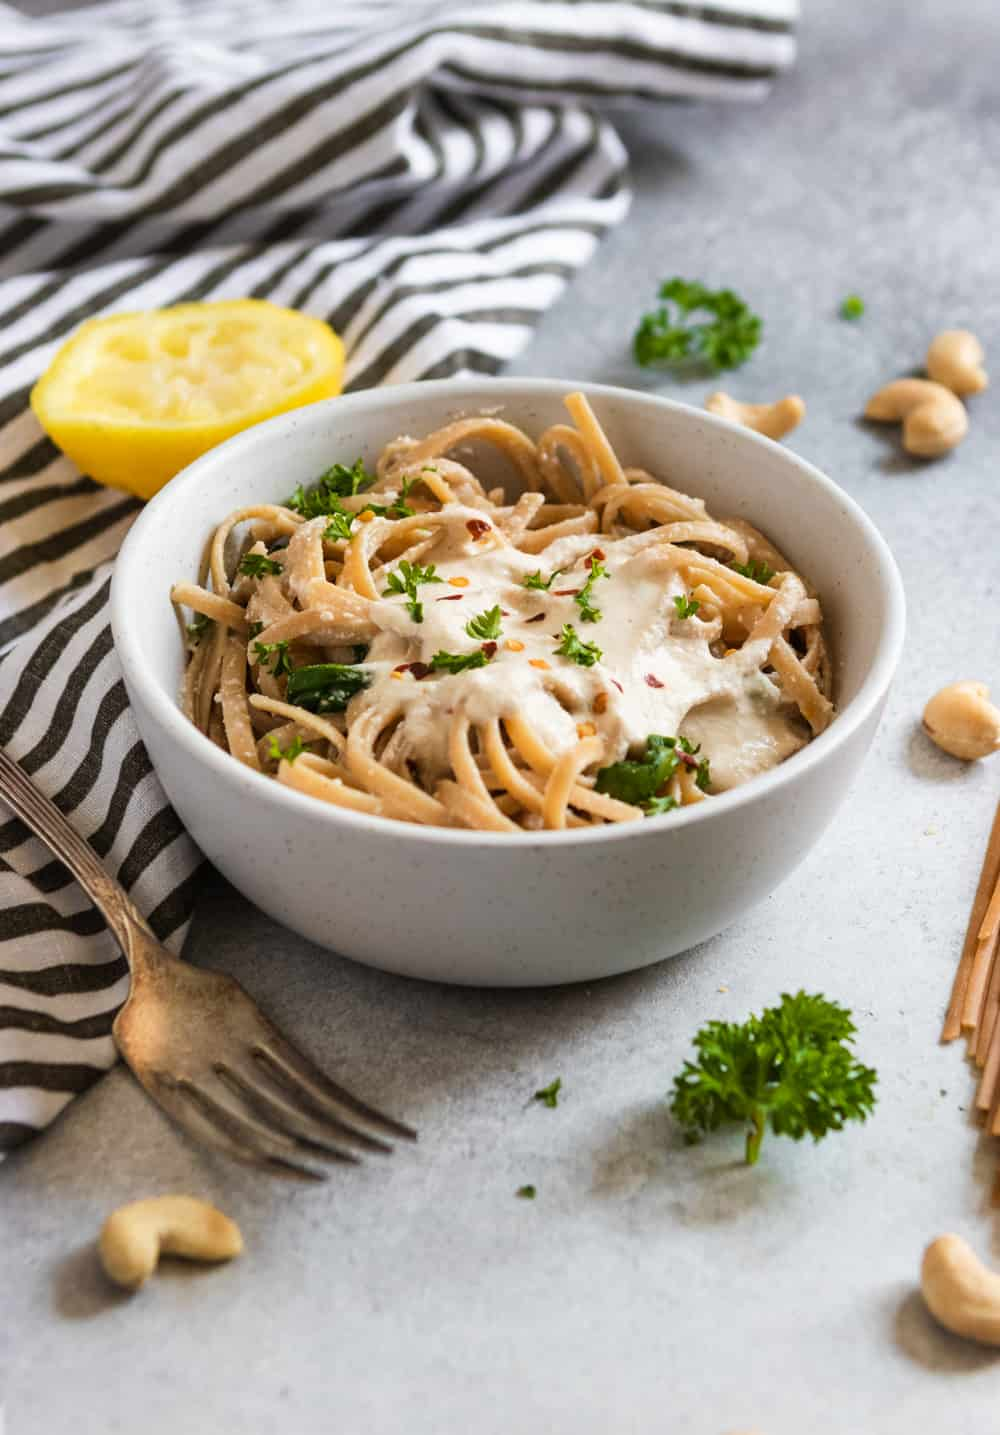 Lemon Garlic Cashew Cream Sauce with pasta.